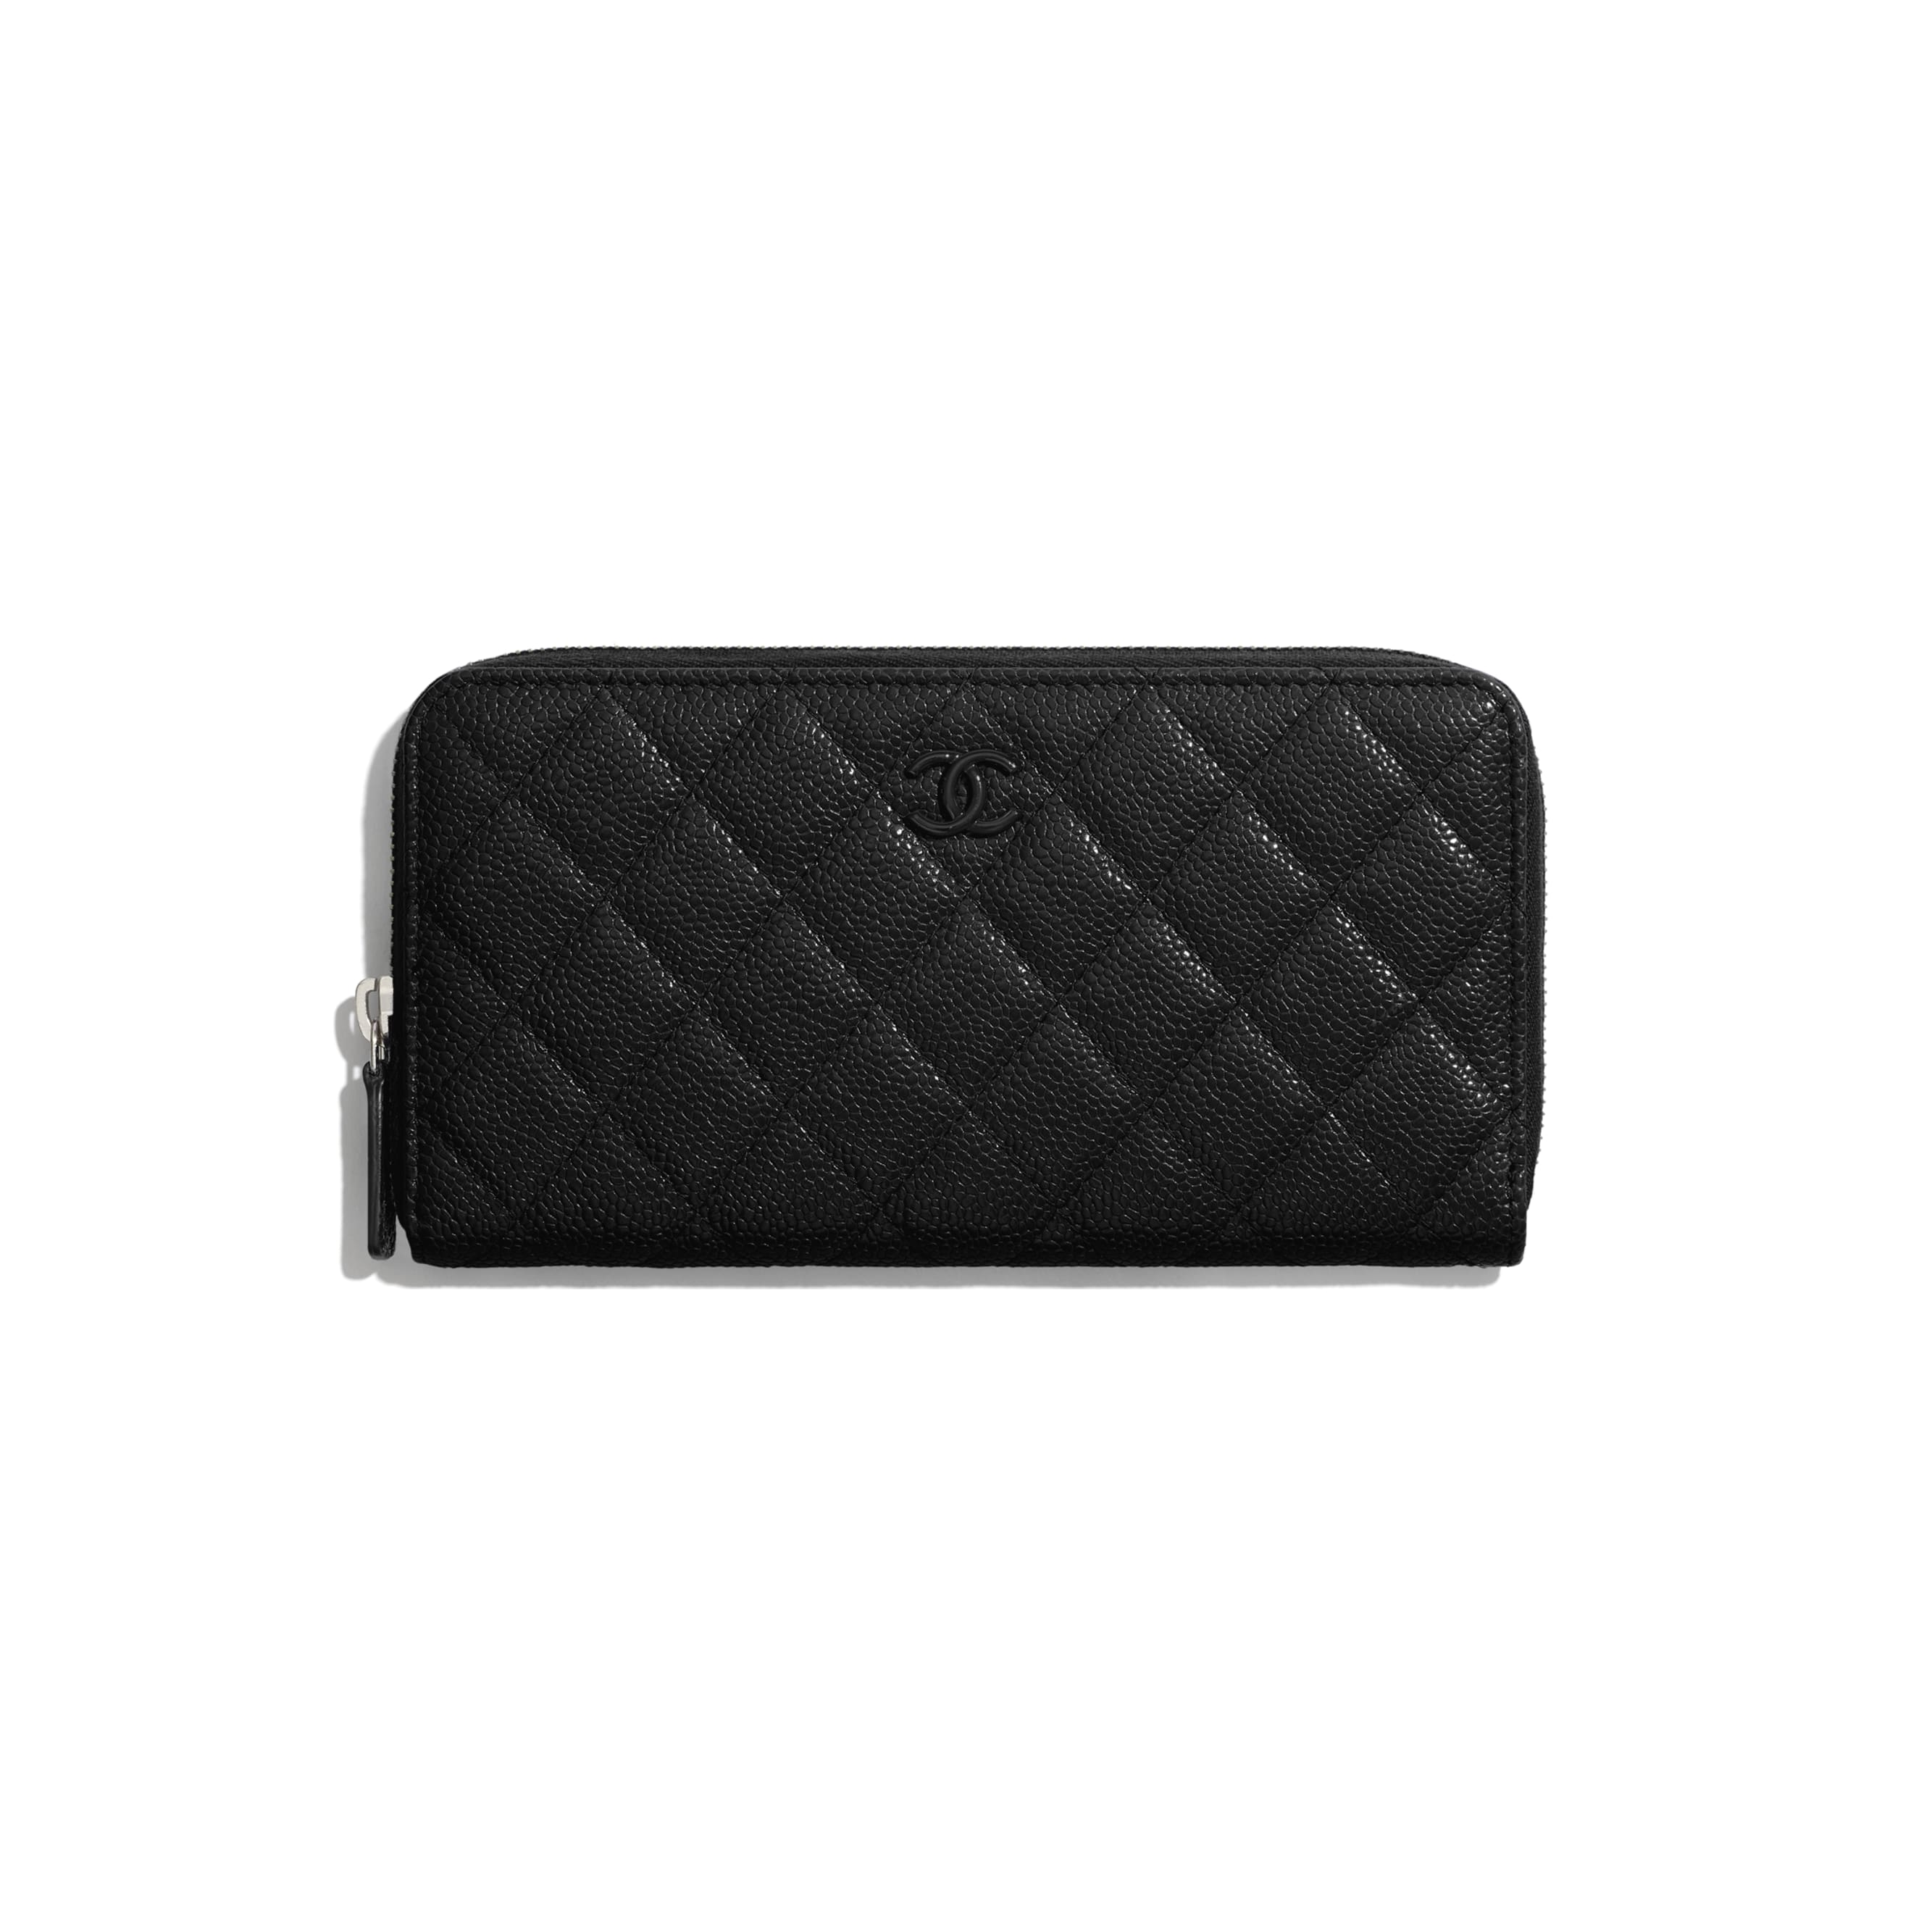 Long Zipped Wallet - Black - Grained Calfskin & Lacquered Metal - CHANEL - Default view - see standard sized version